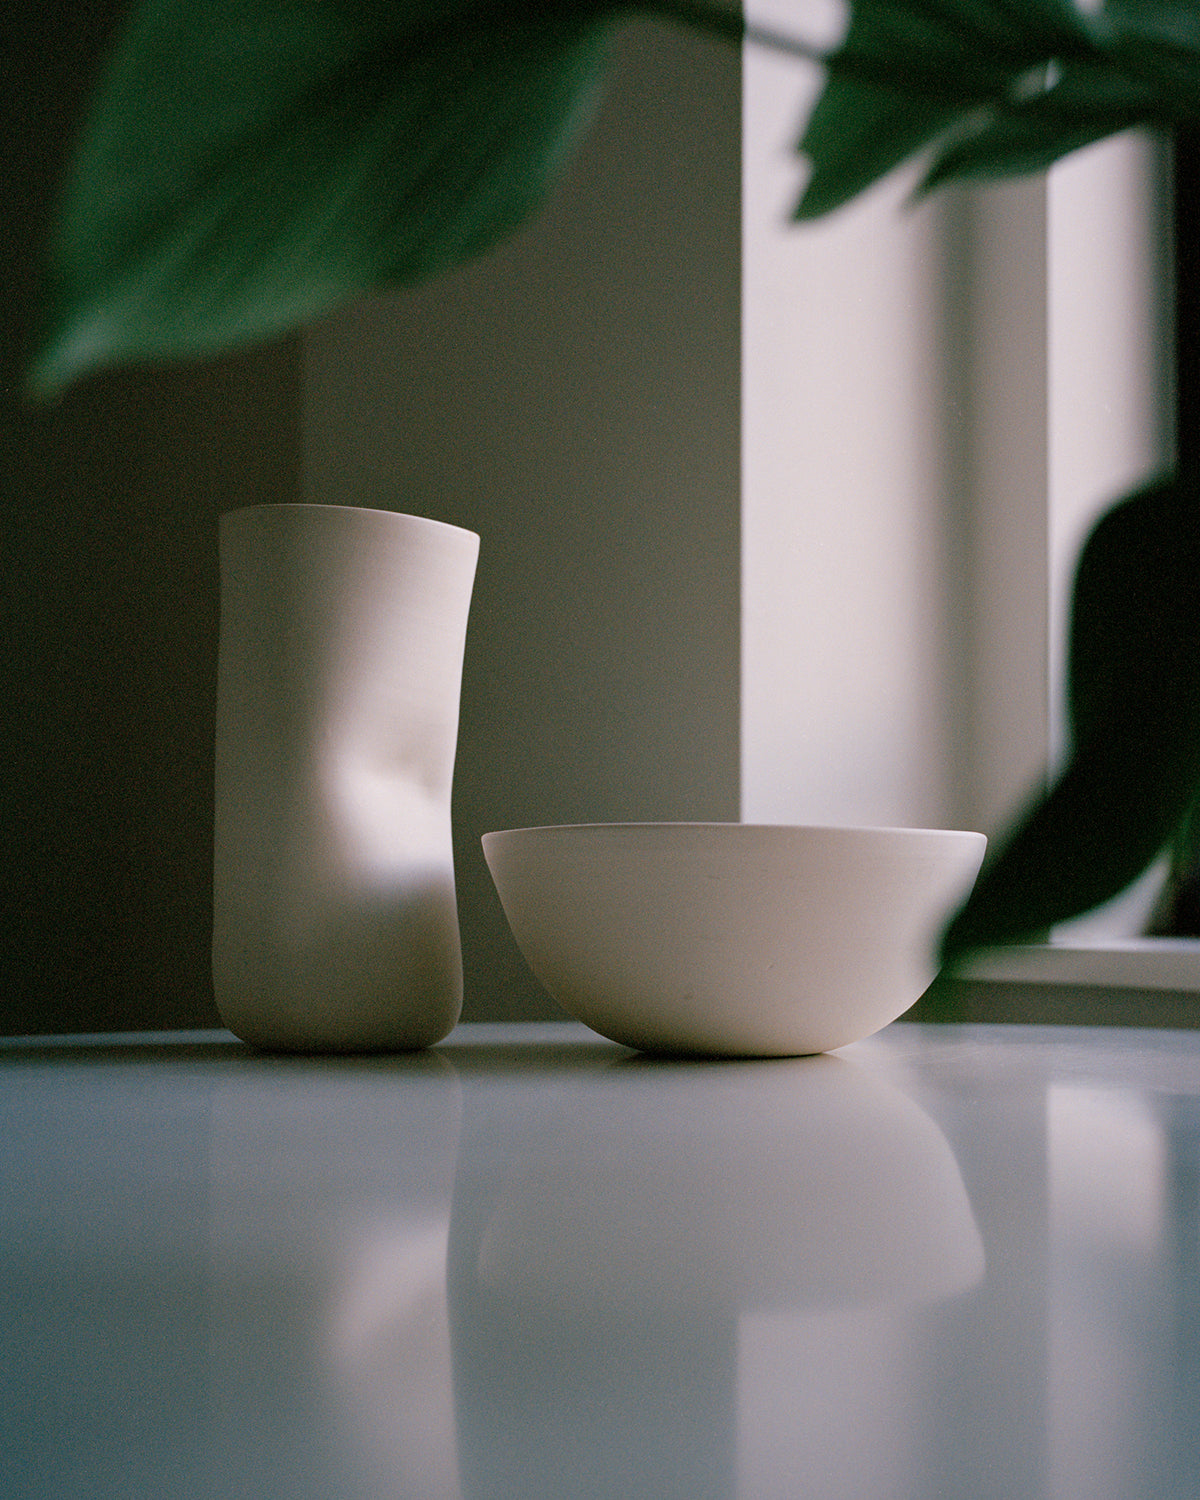 two designer ceramic homewares on table with house plants